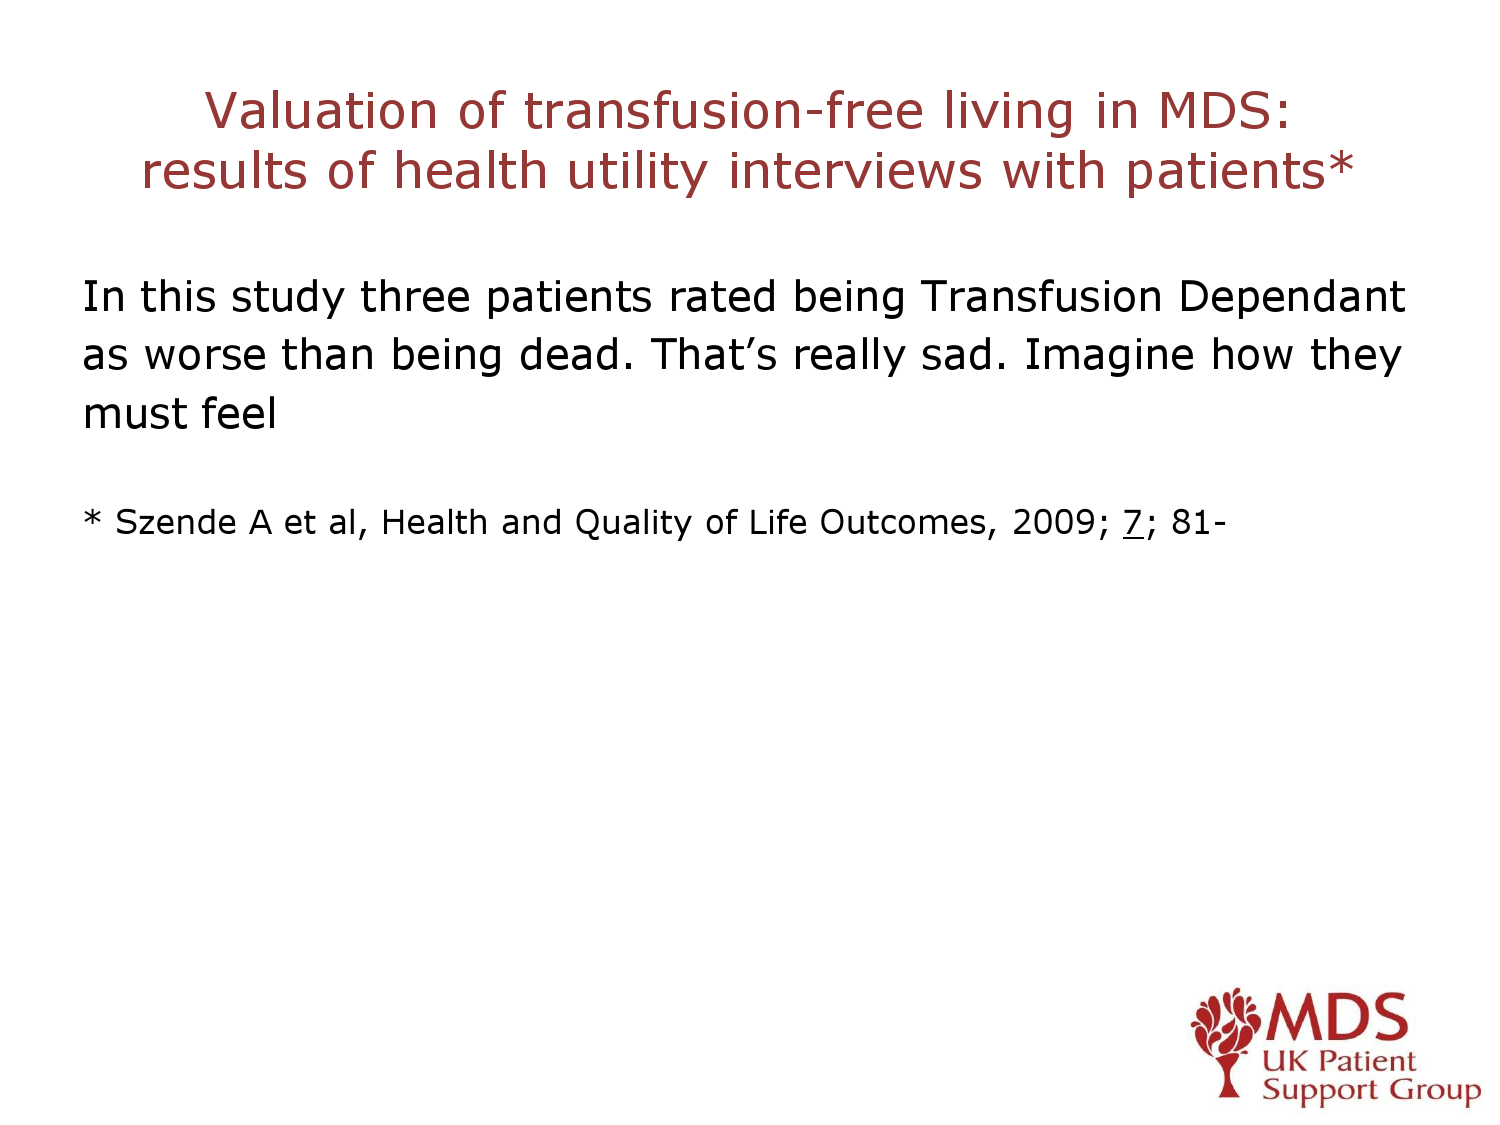 uk-mds-forum-slides-2014-slide-20.png